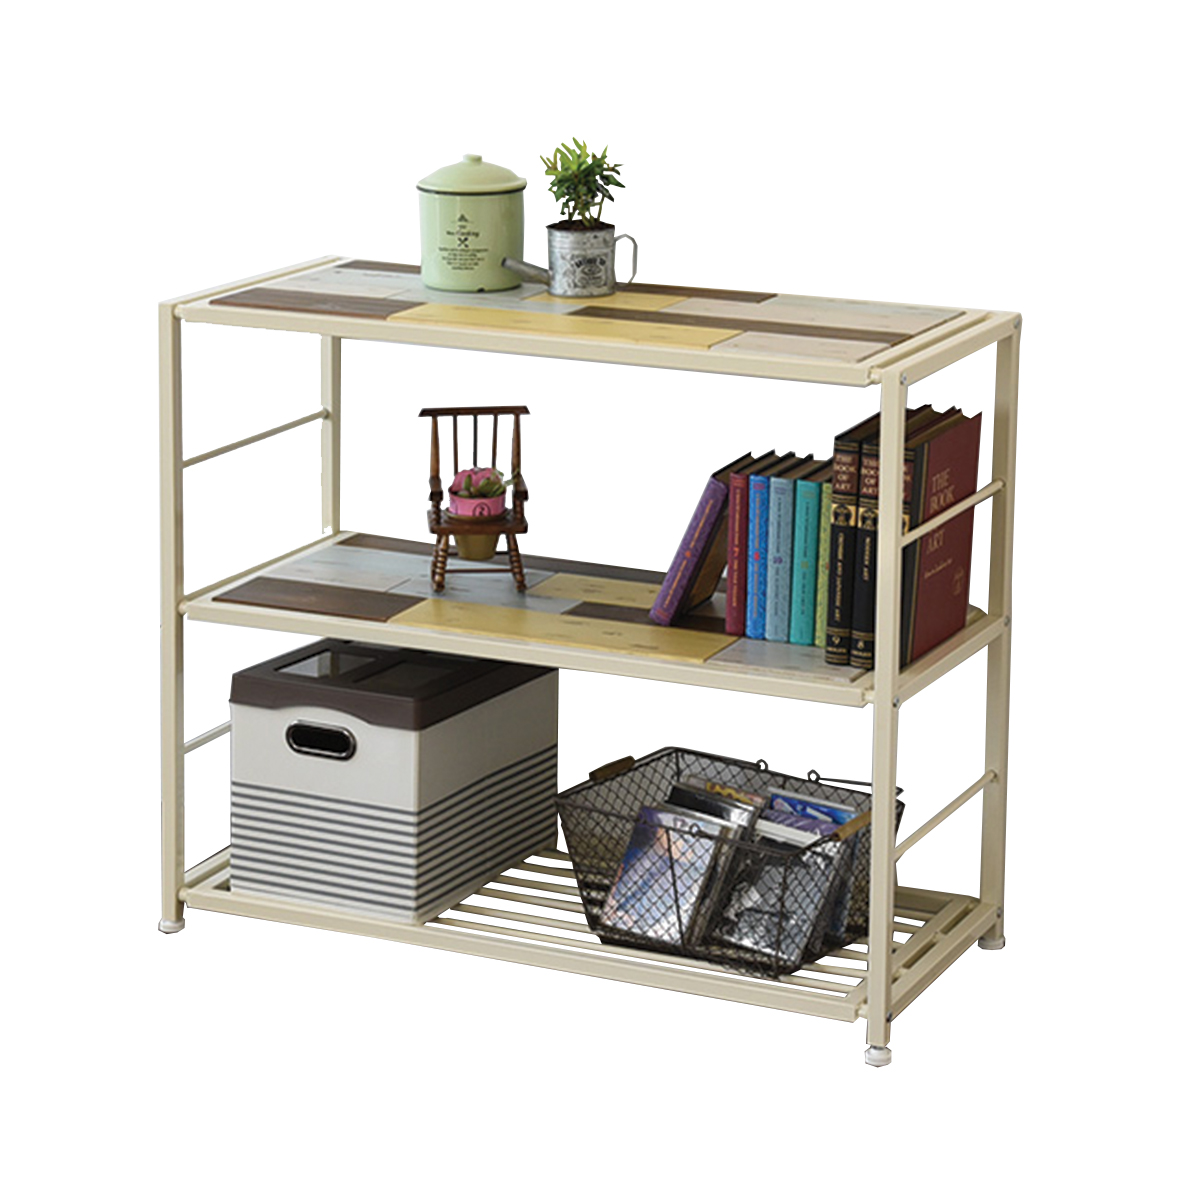 florence-3-layer-shelf-model-kfp-f3ls